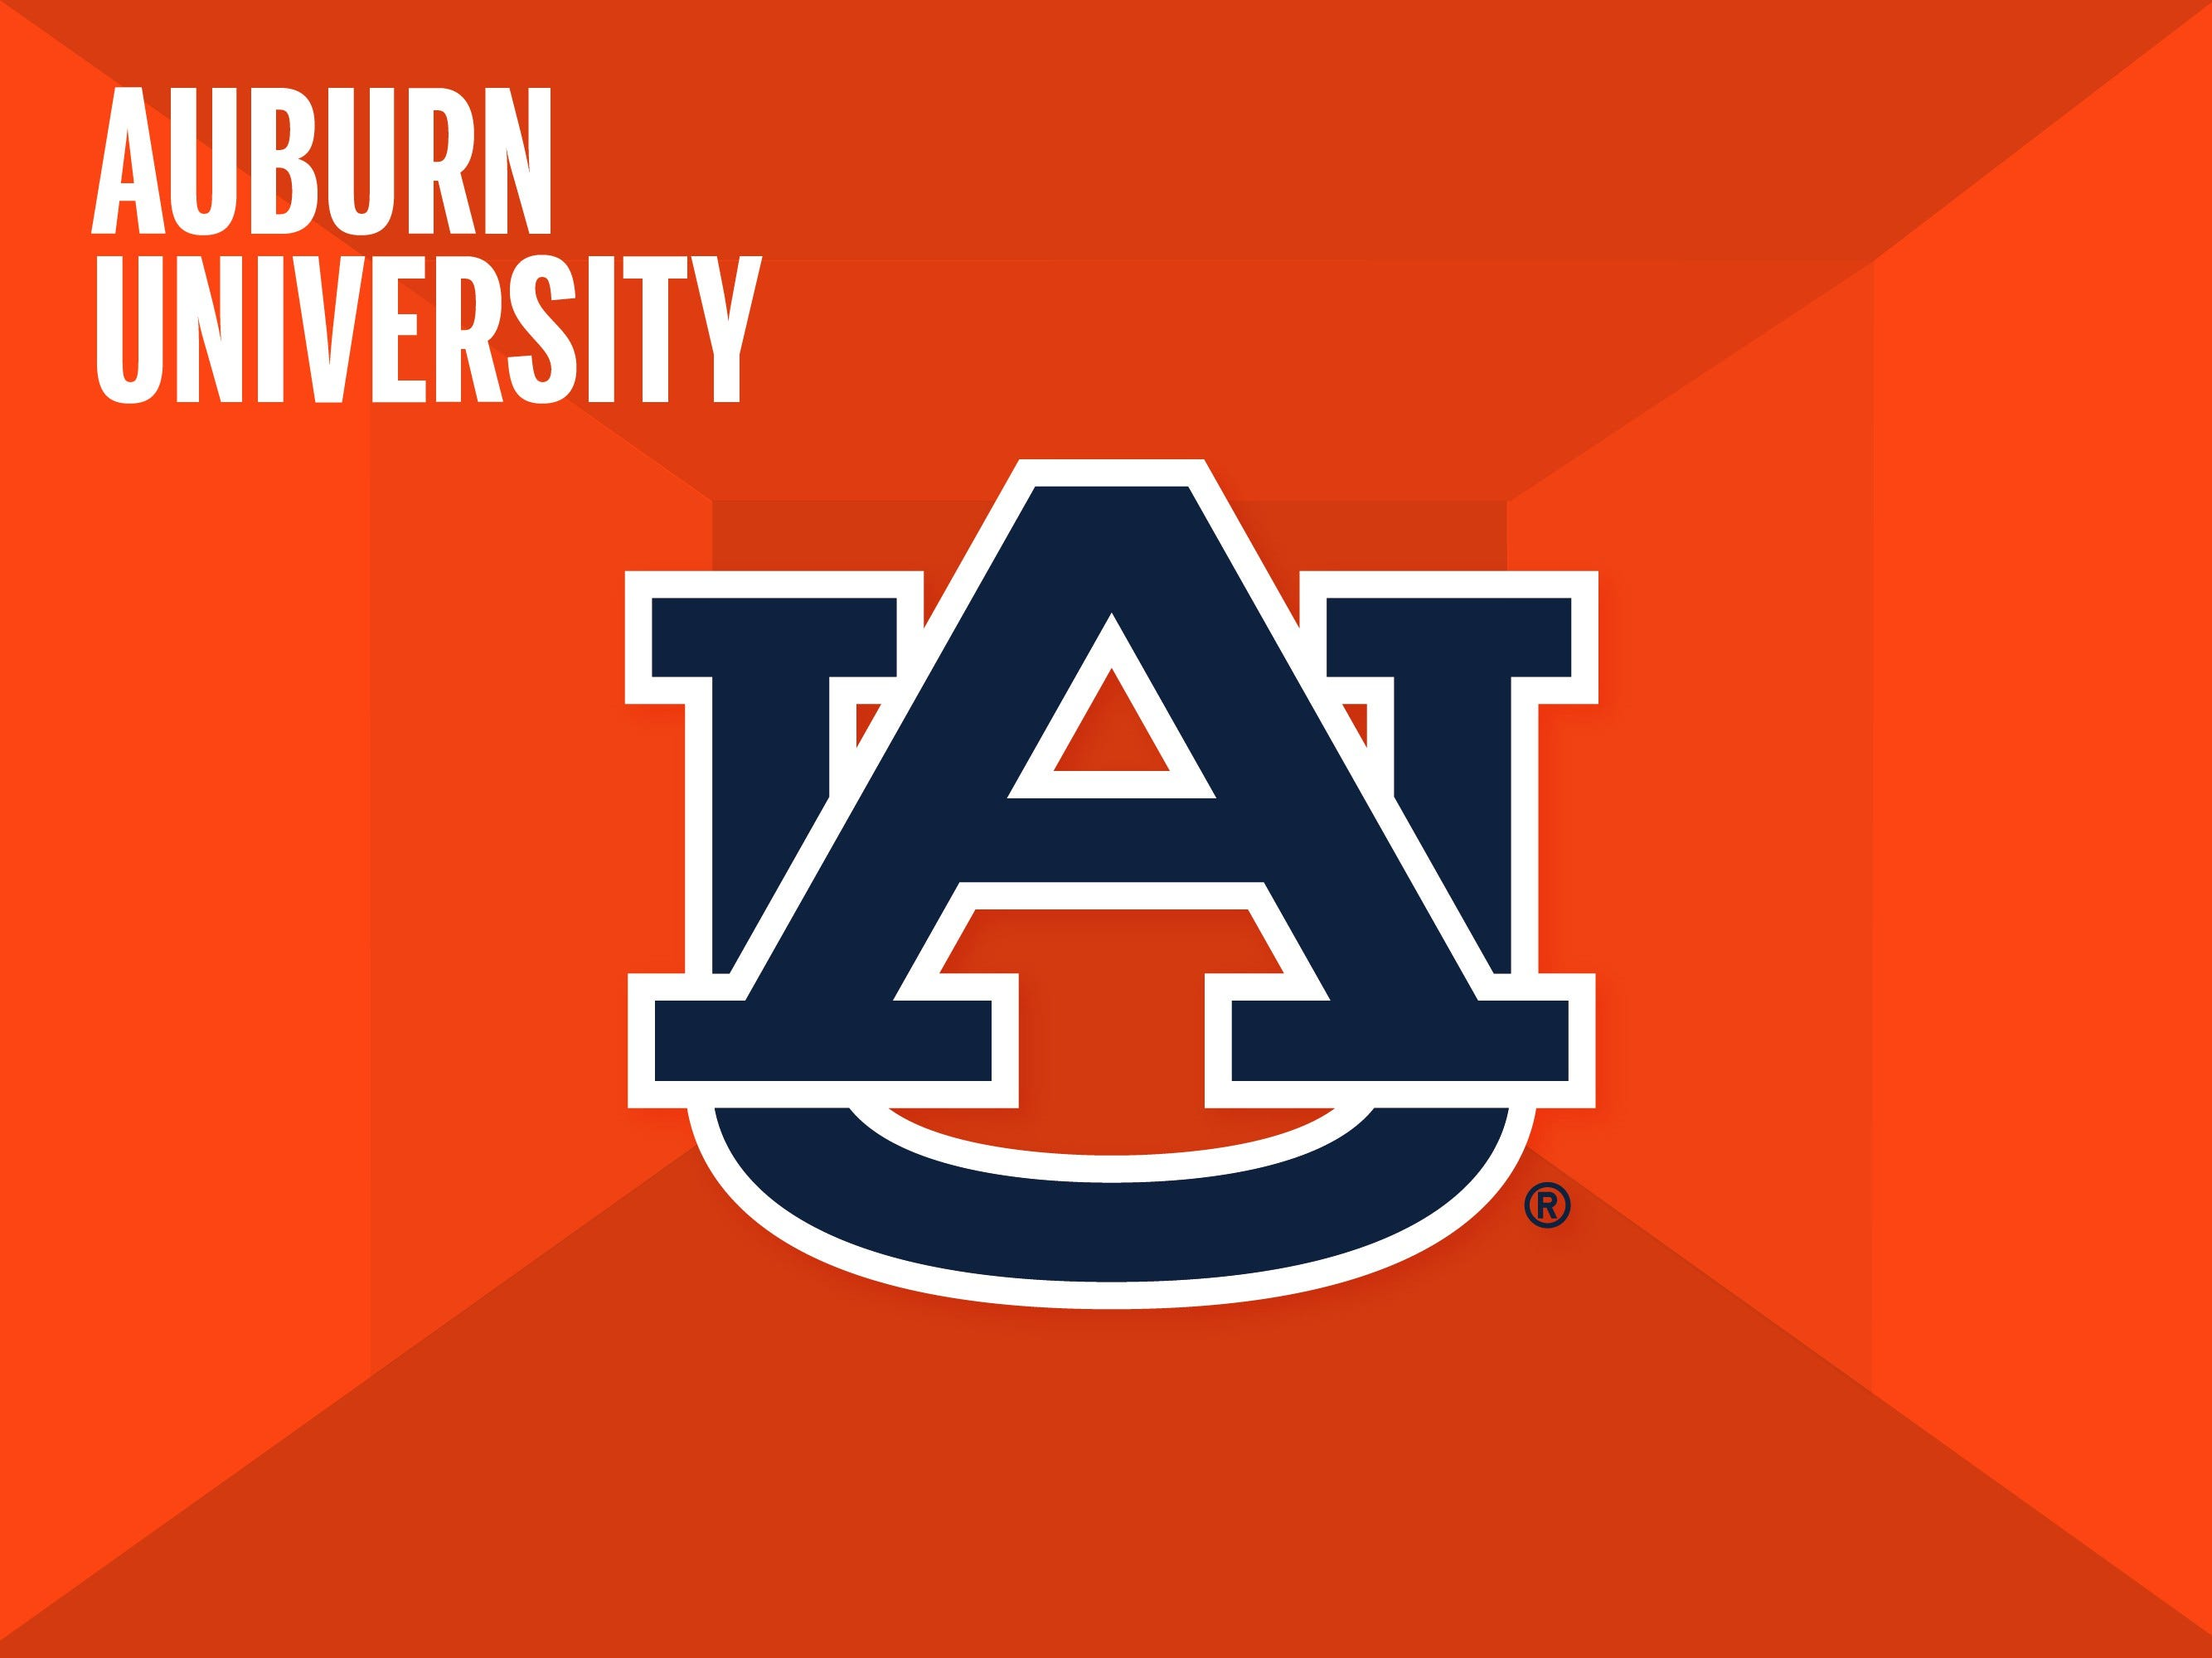 Auburn University College Shop